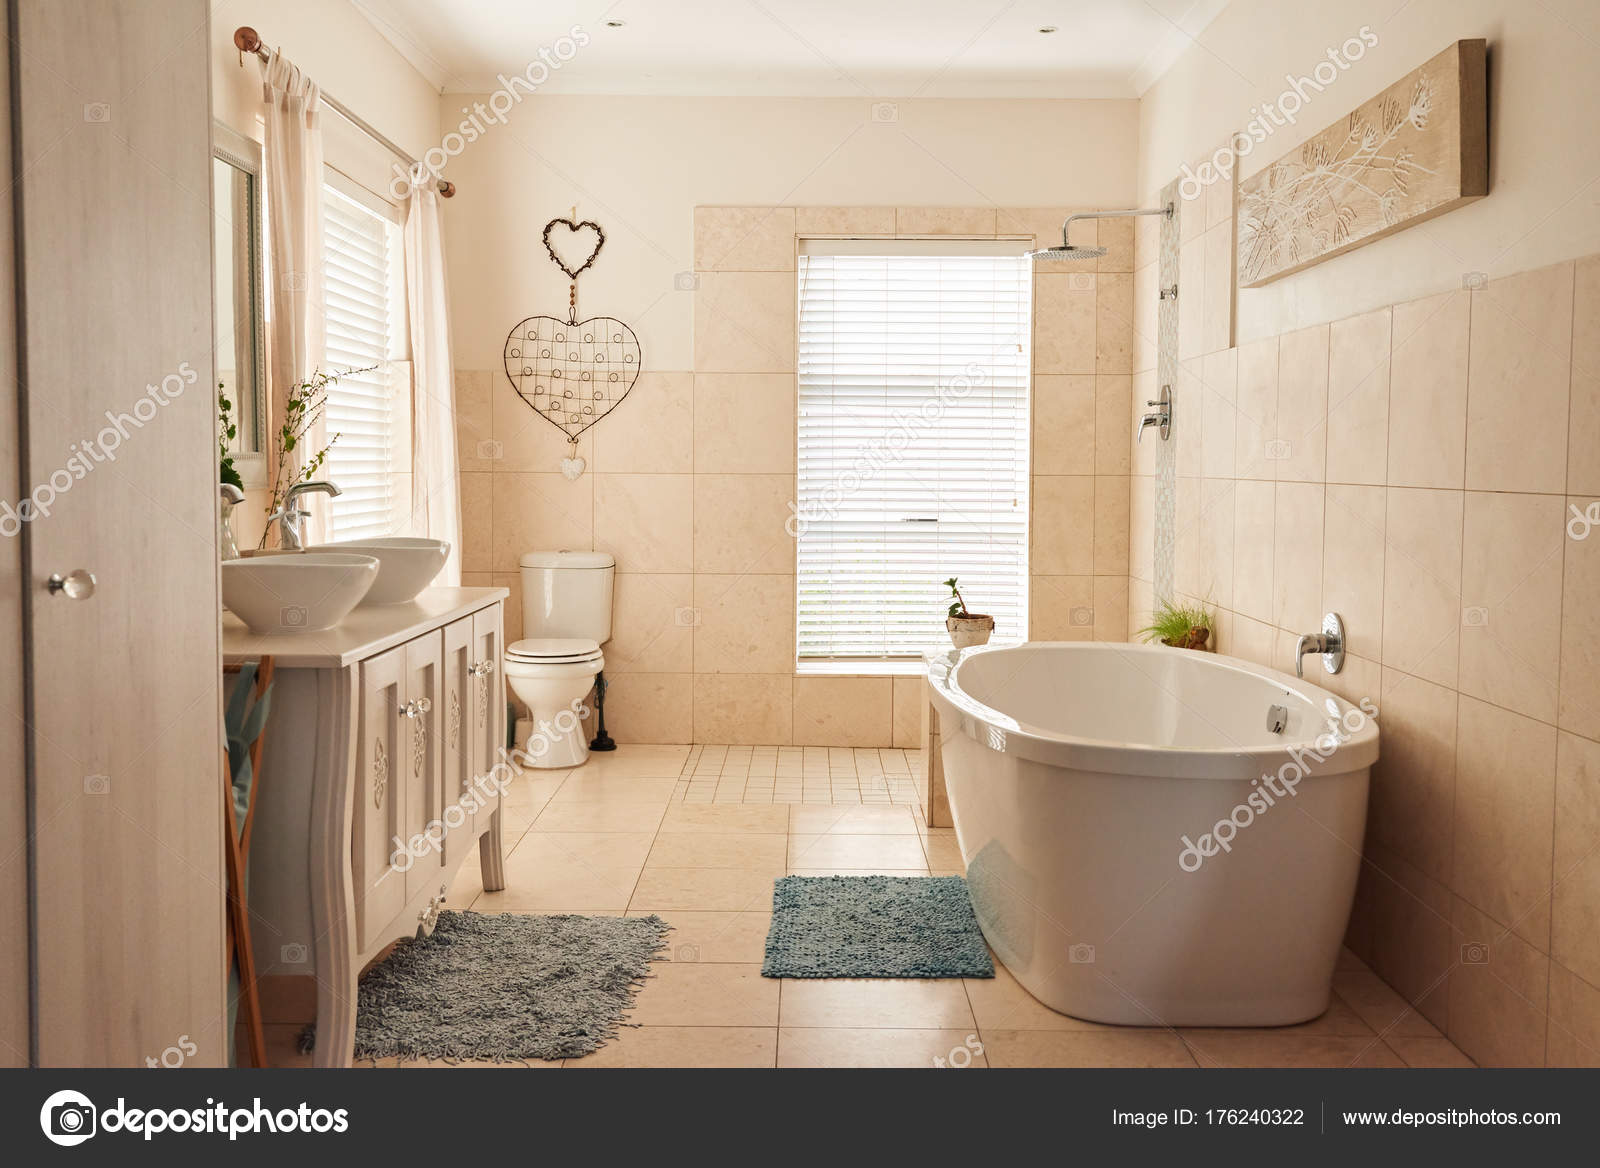 Bagno in stile country foto stock mavoimages 176240322 for Bagno stile country